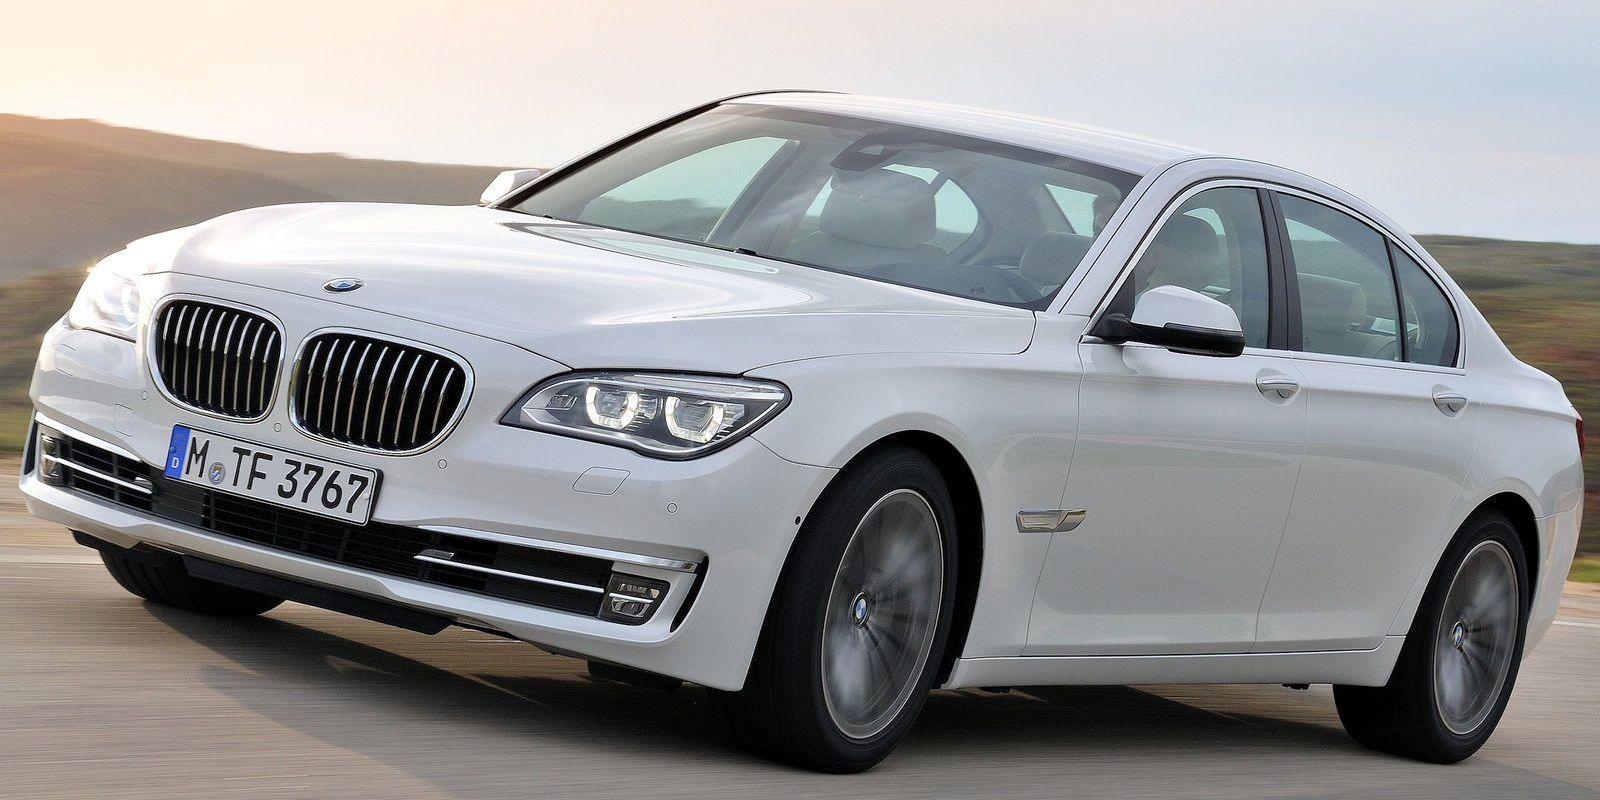 28 Of The Best Cheap Used Luxury Cars You Can Buy Bmw 7 Series Bmw Car Models Bmw